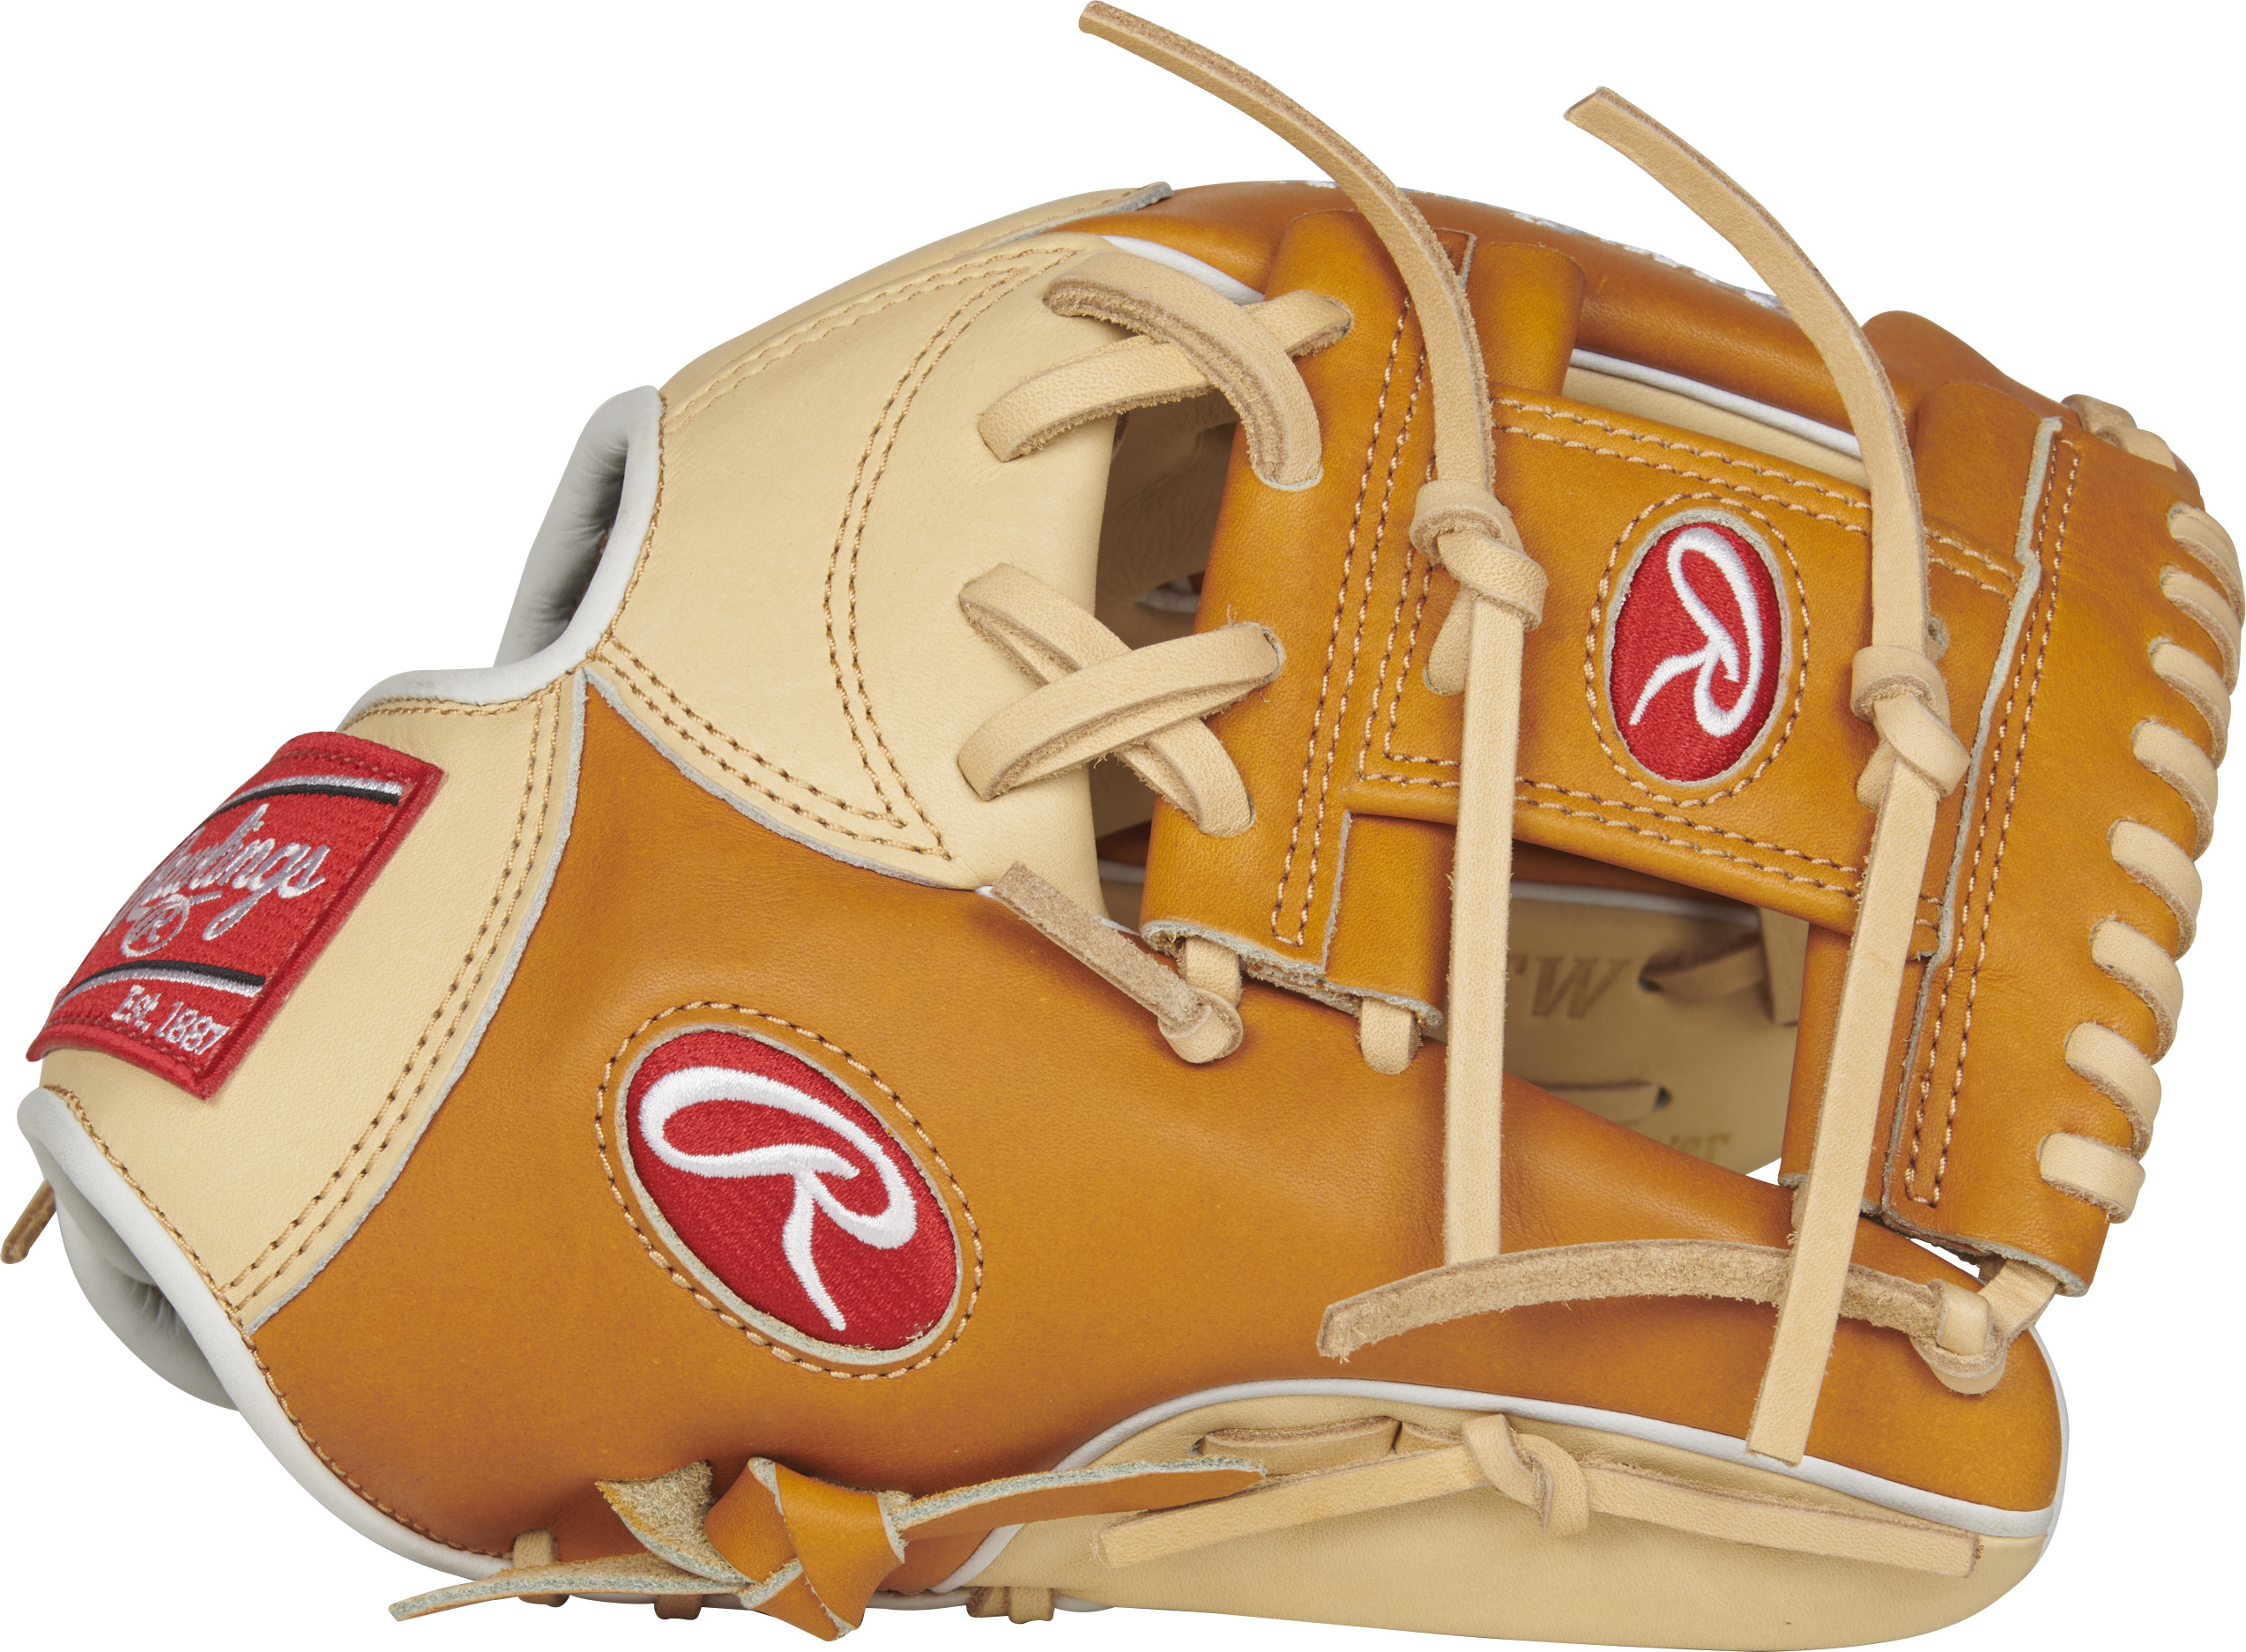 http://www.bestbatdeals.com/images/gloves/rawlings/PRONP4-2CTW-3.jpg